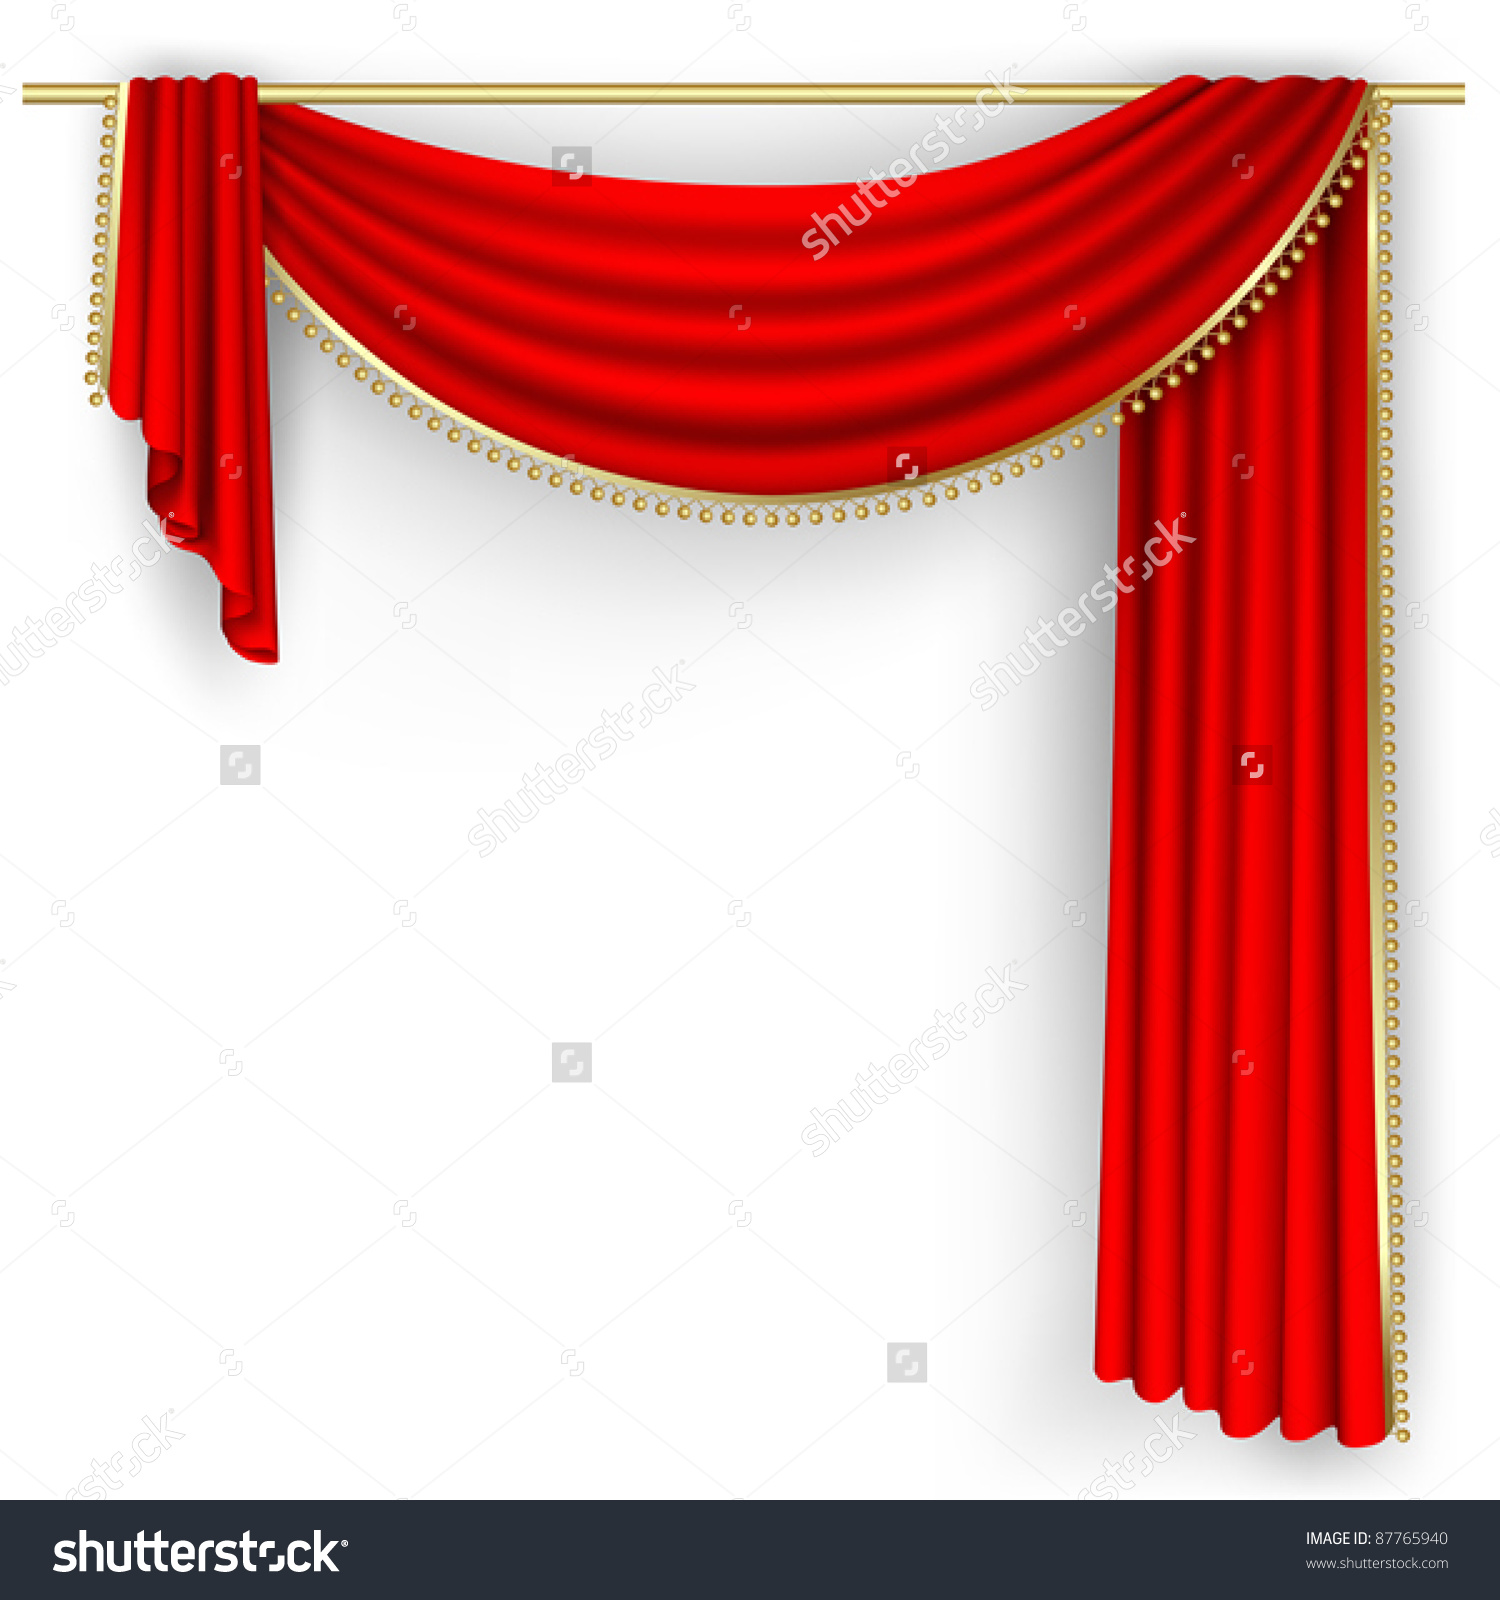 Theater Stage With Red Curtain. Clipping Mask. Mesh. Stock Vector.